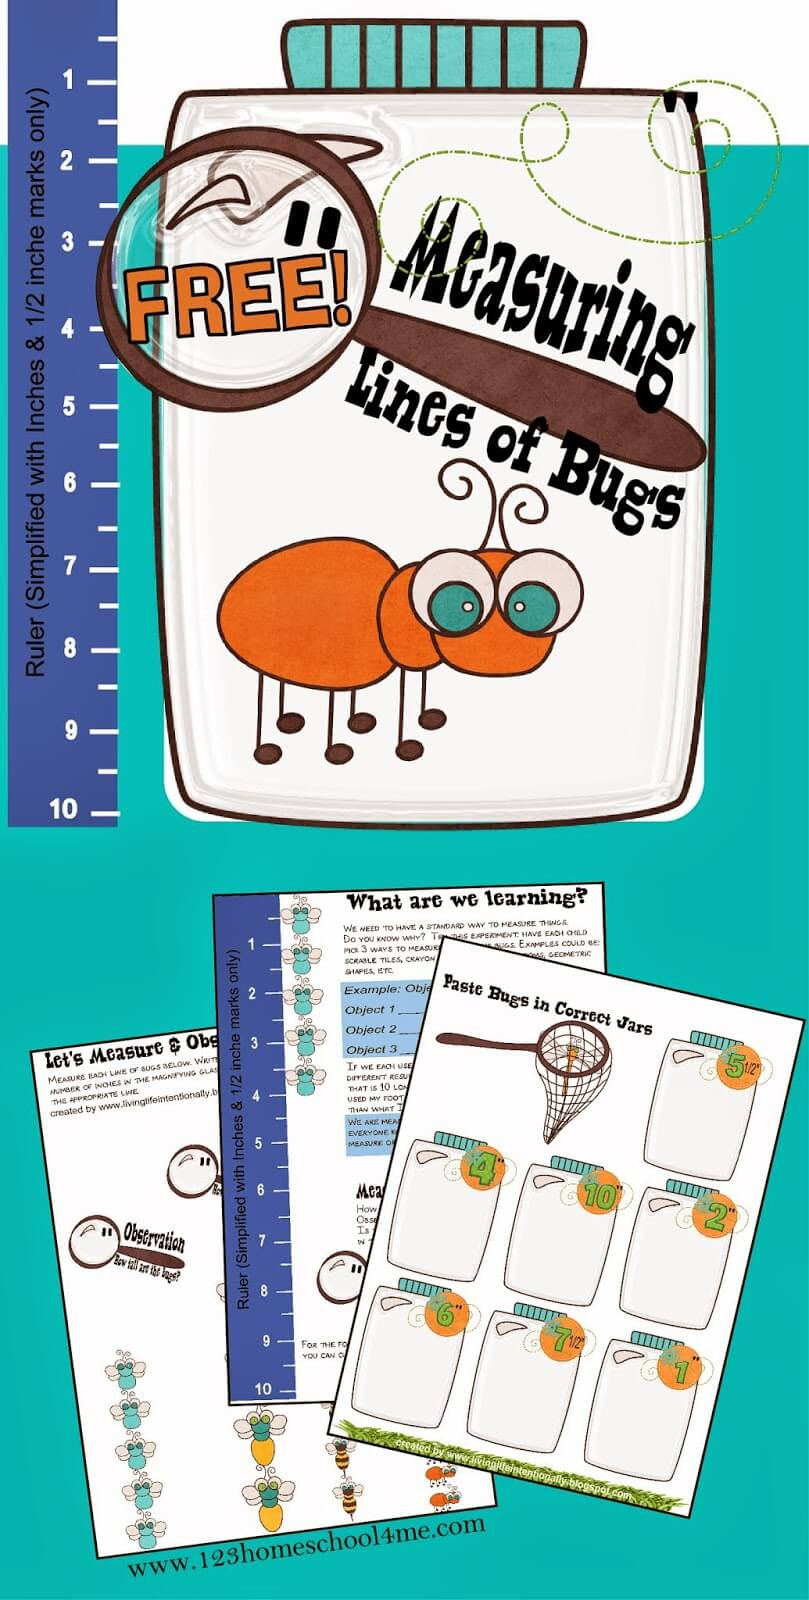 FREE Measuring Bugs  - this is such a fun measurement for kids activity for  Preschool, Kindergarten, and first grade kids to practice using a ruler. This is super cute and lots of fun math activity #kindergarten #measurement #mathactivities